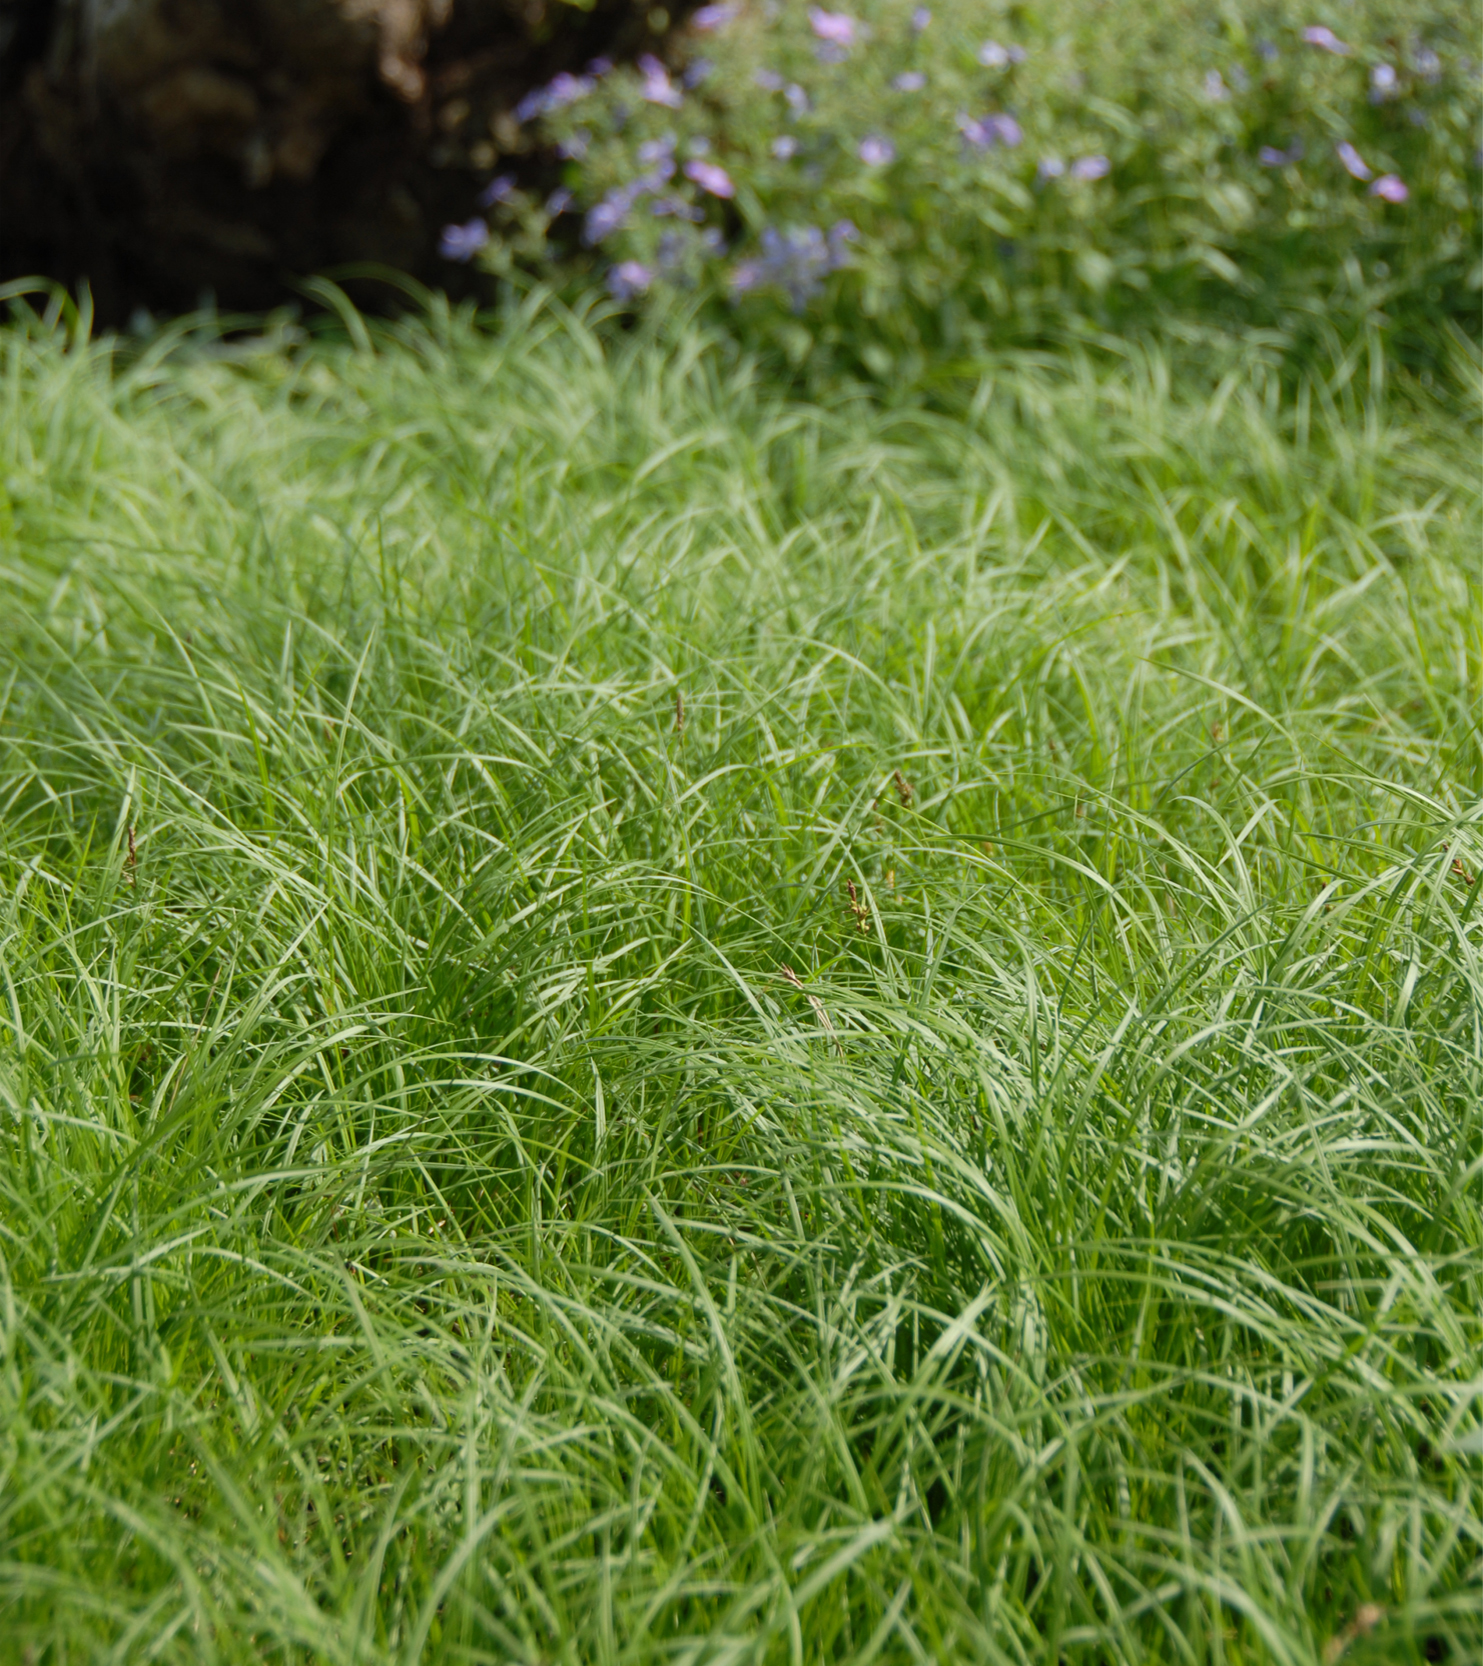 A lawn for shade: Carex Pennsylvanica is a a graceful, shade-loving perennial sedge that is a great alternative to lawn grass-- if you don't need to run on it. It doesn't even need that much water, and you only need to mow it 2x per year tops.   View Product Website